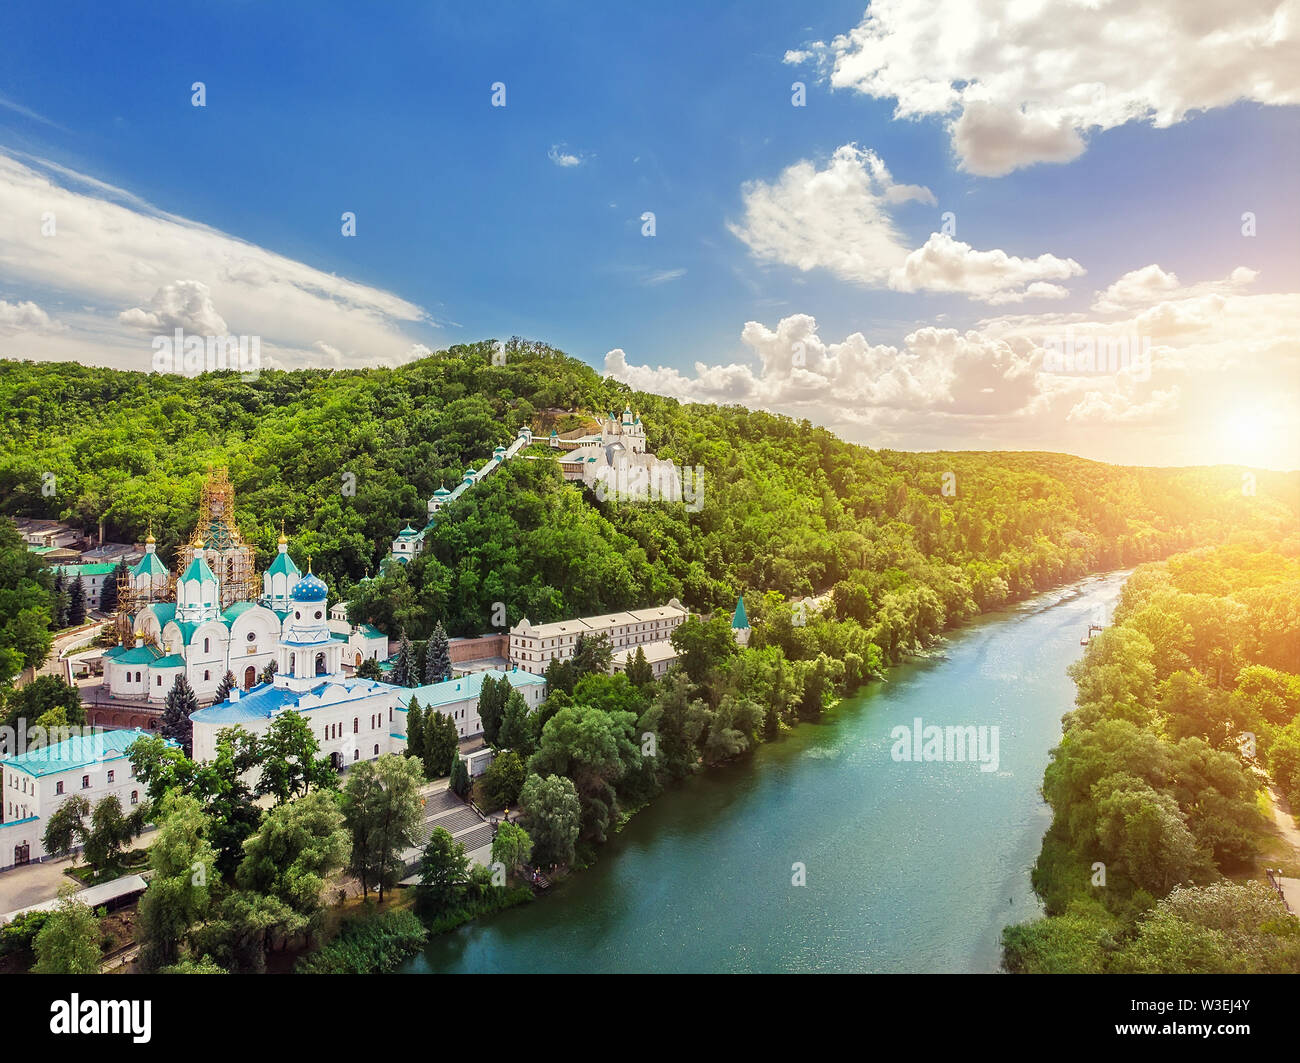 Svaytogorsk lavra ancient monastery hills panoramic view with green forest and Donets river at Donbass, Ukraine on bright sunny day. Ukraine travel de - Stock Image